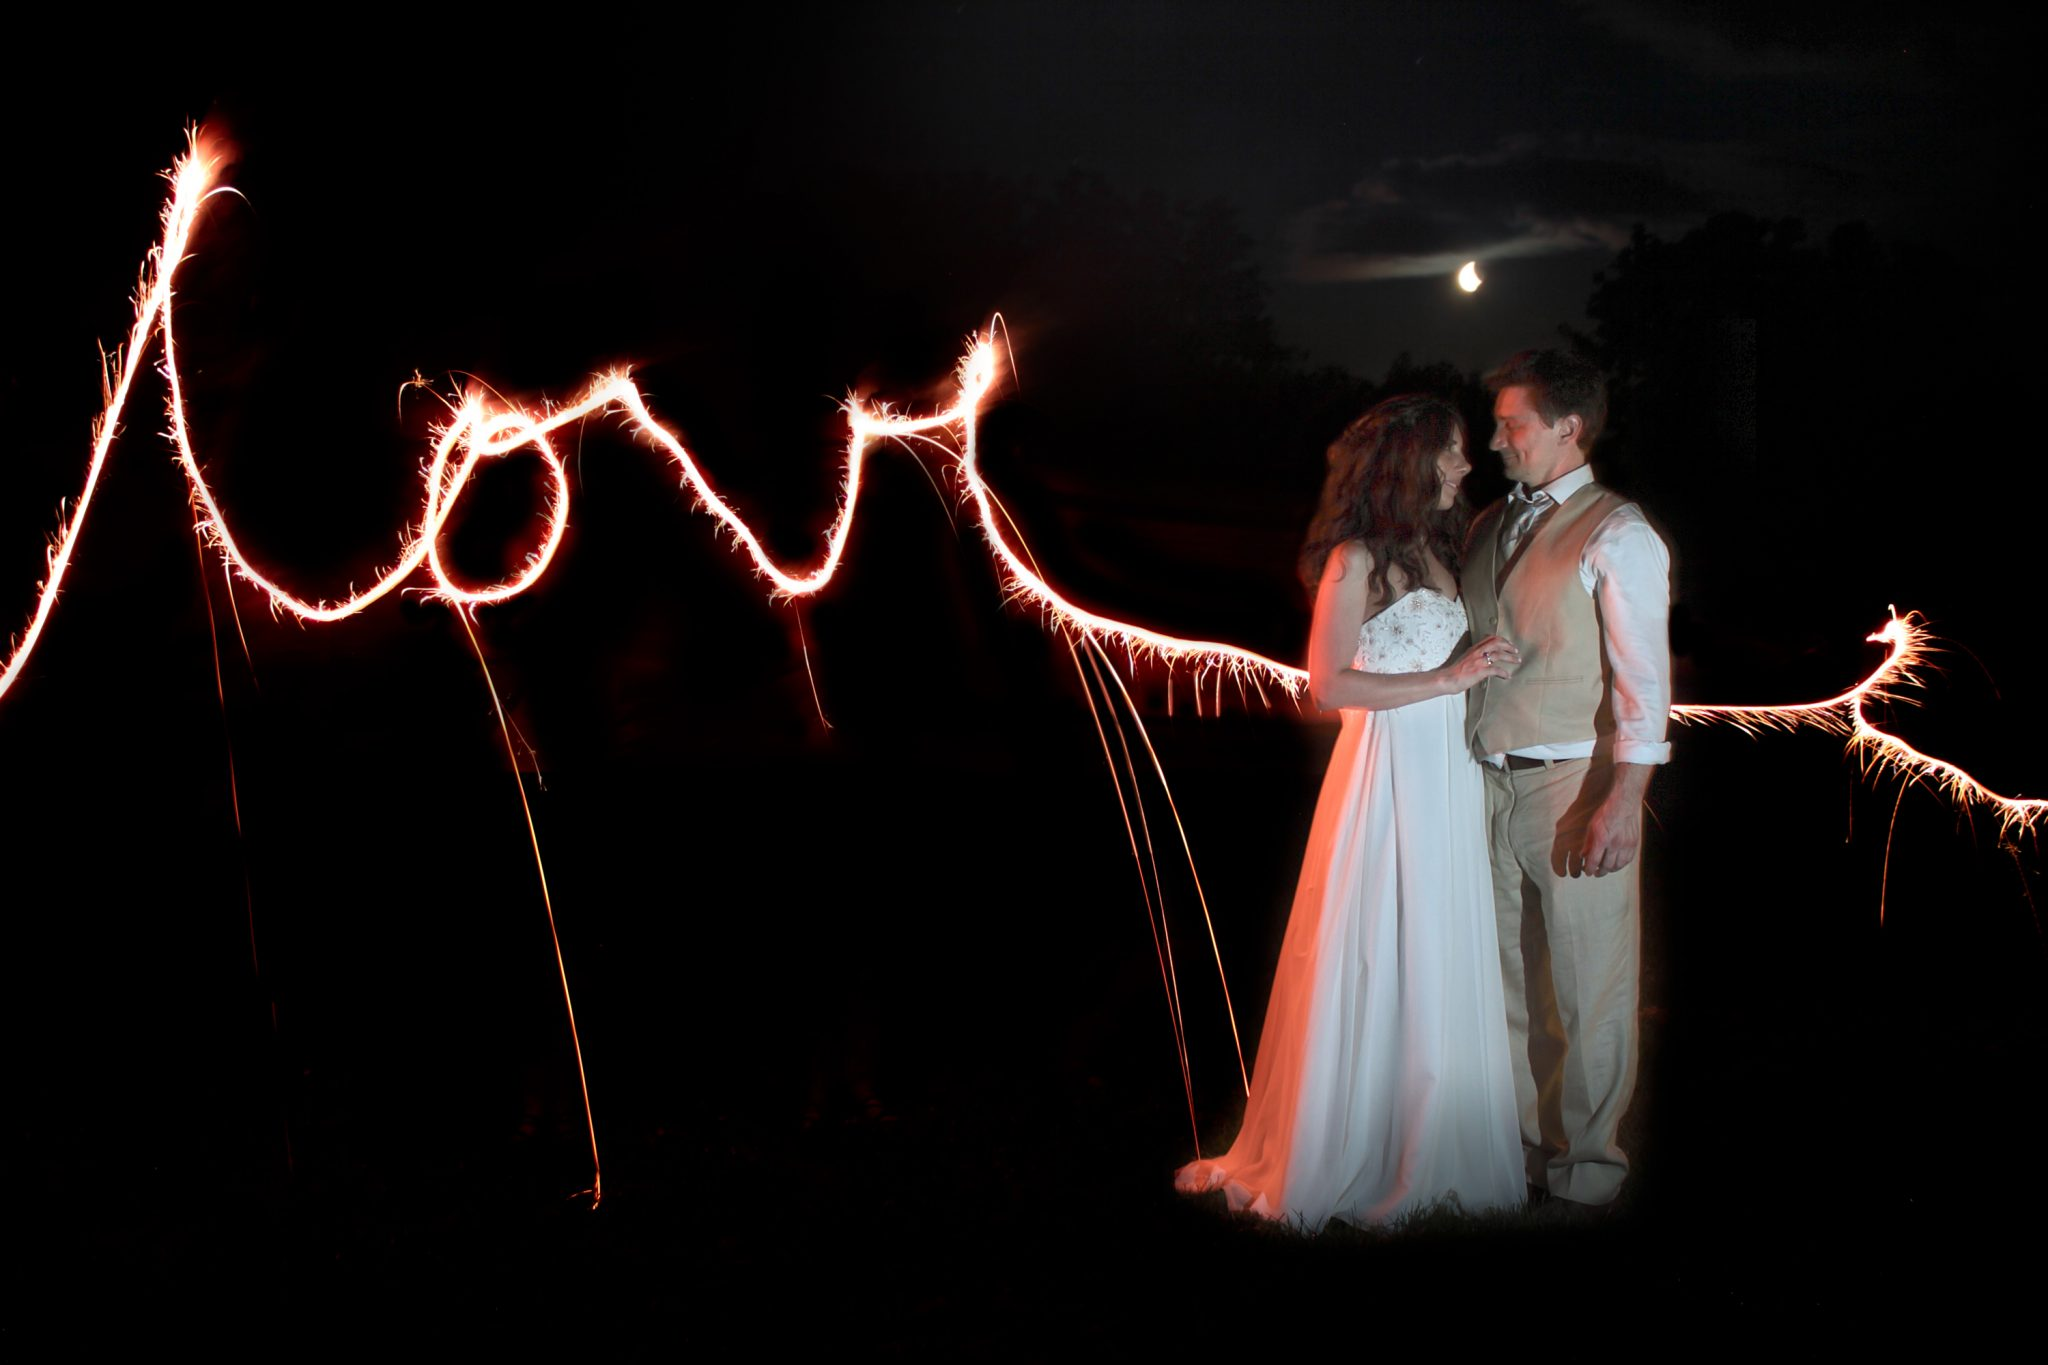 Sparklers write out love behind wedding couple night photograph in Vermont